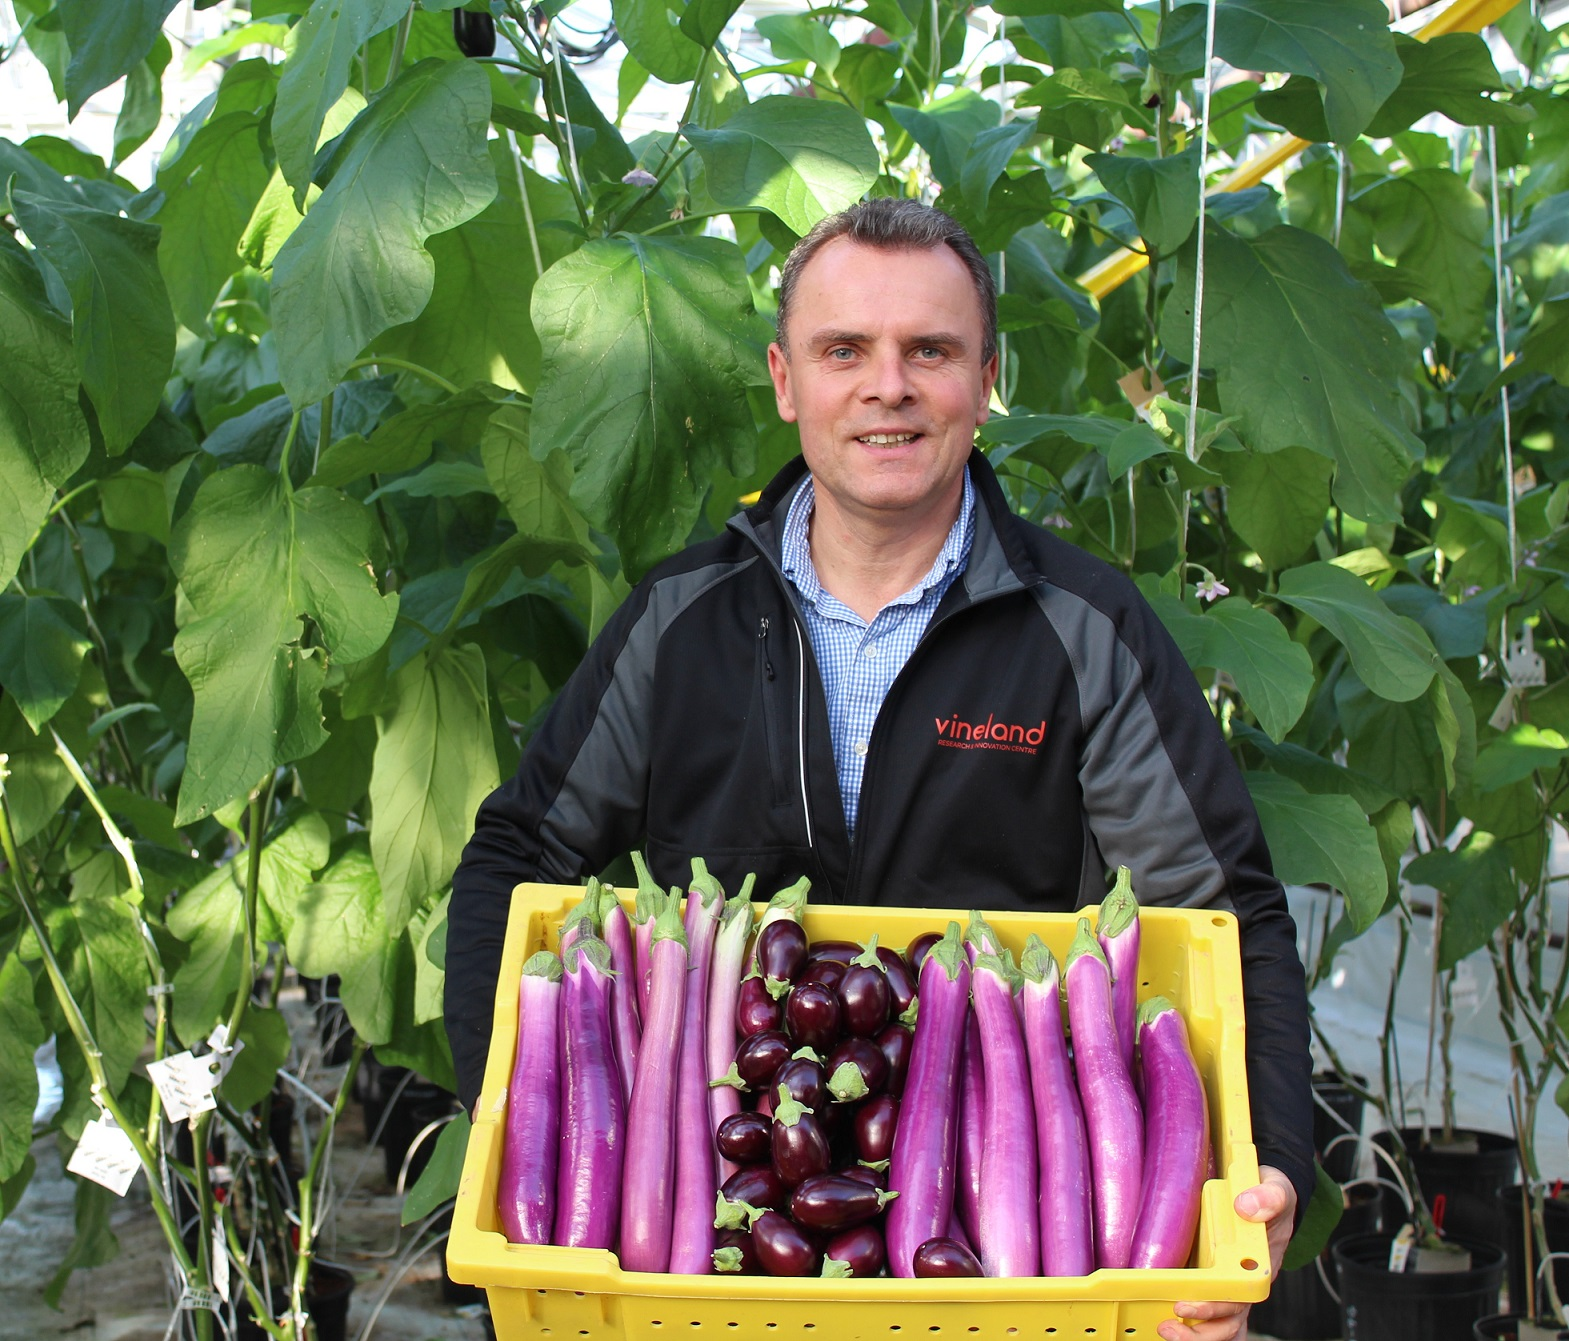 Dr. Viliam Zvalo with the Chinese long (left and right) and Indian round (center) eggplant varieties.